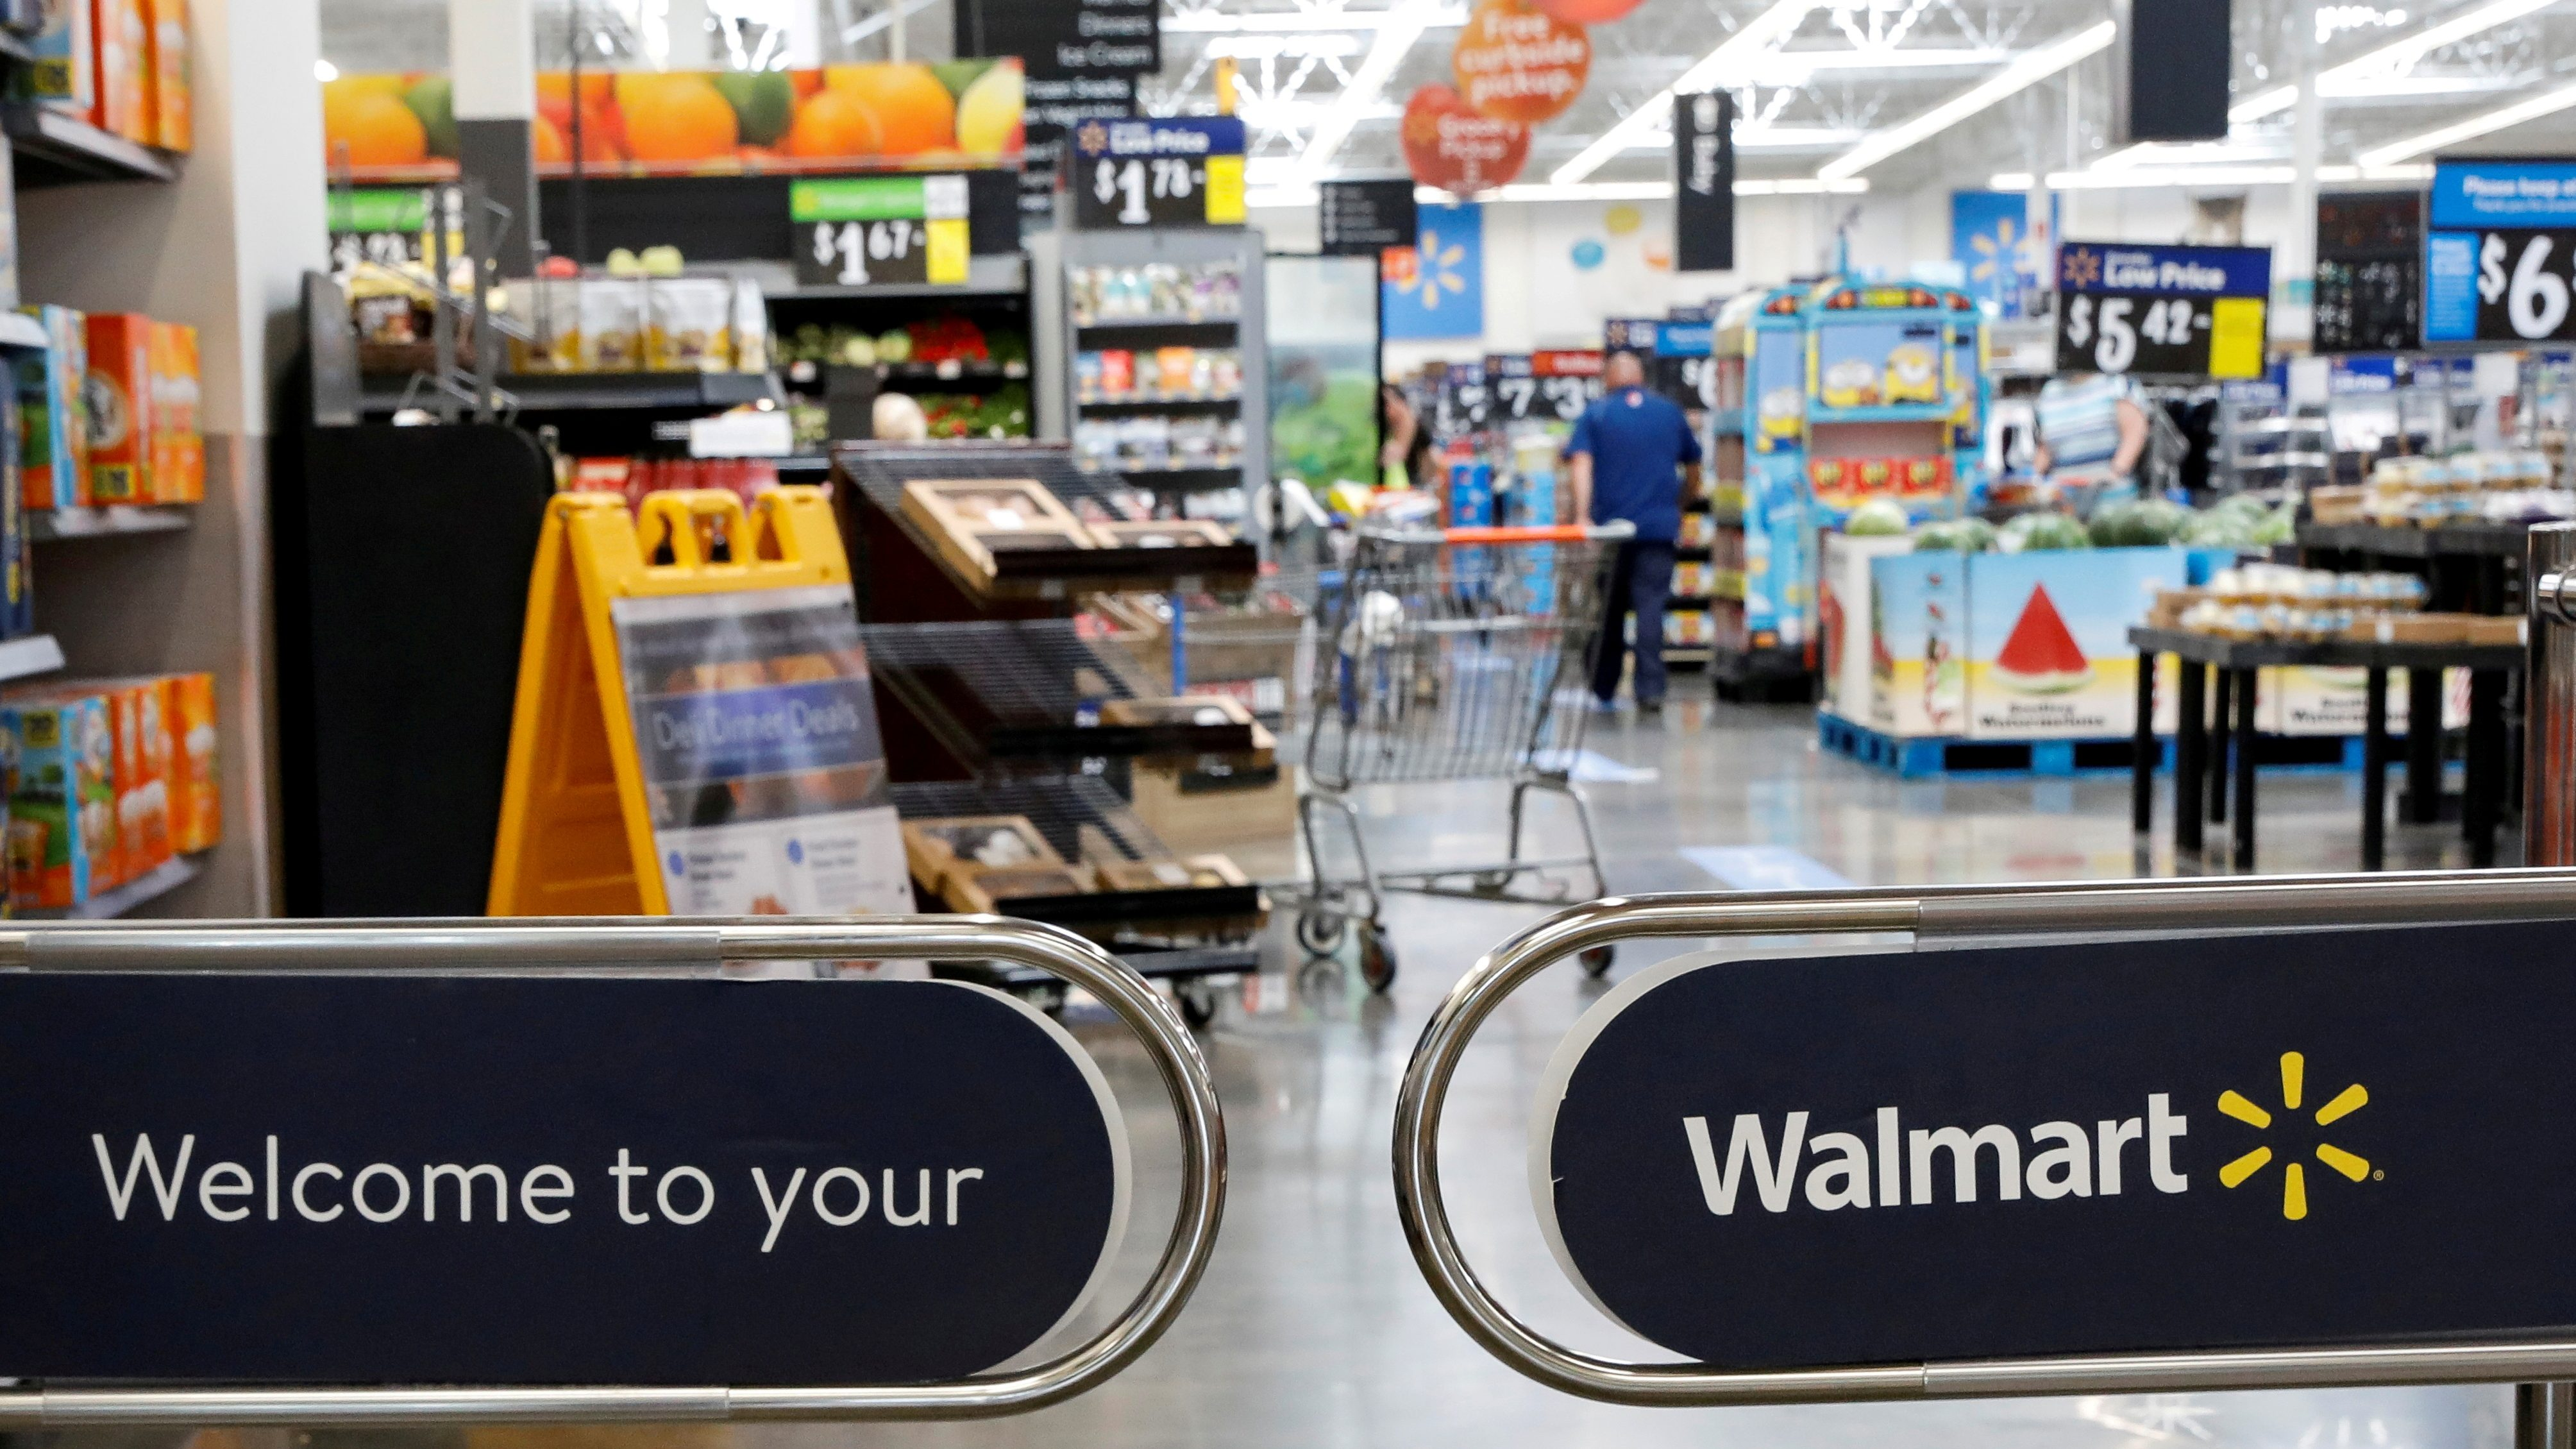 Entrance to a Walmart store.